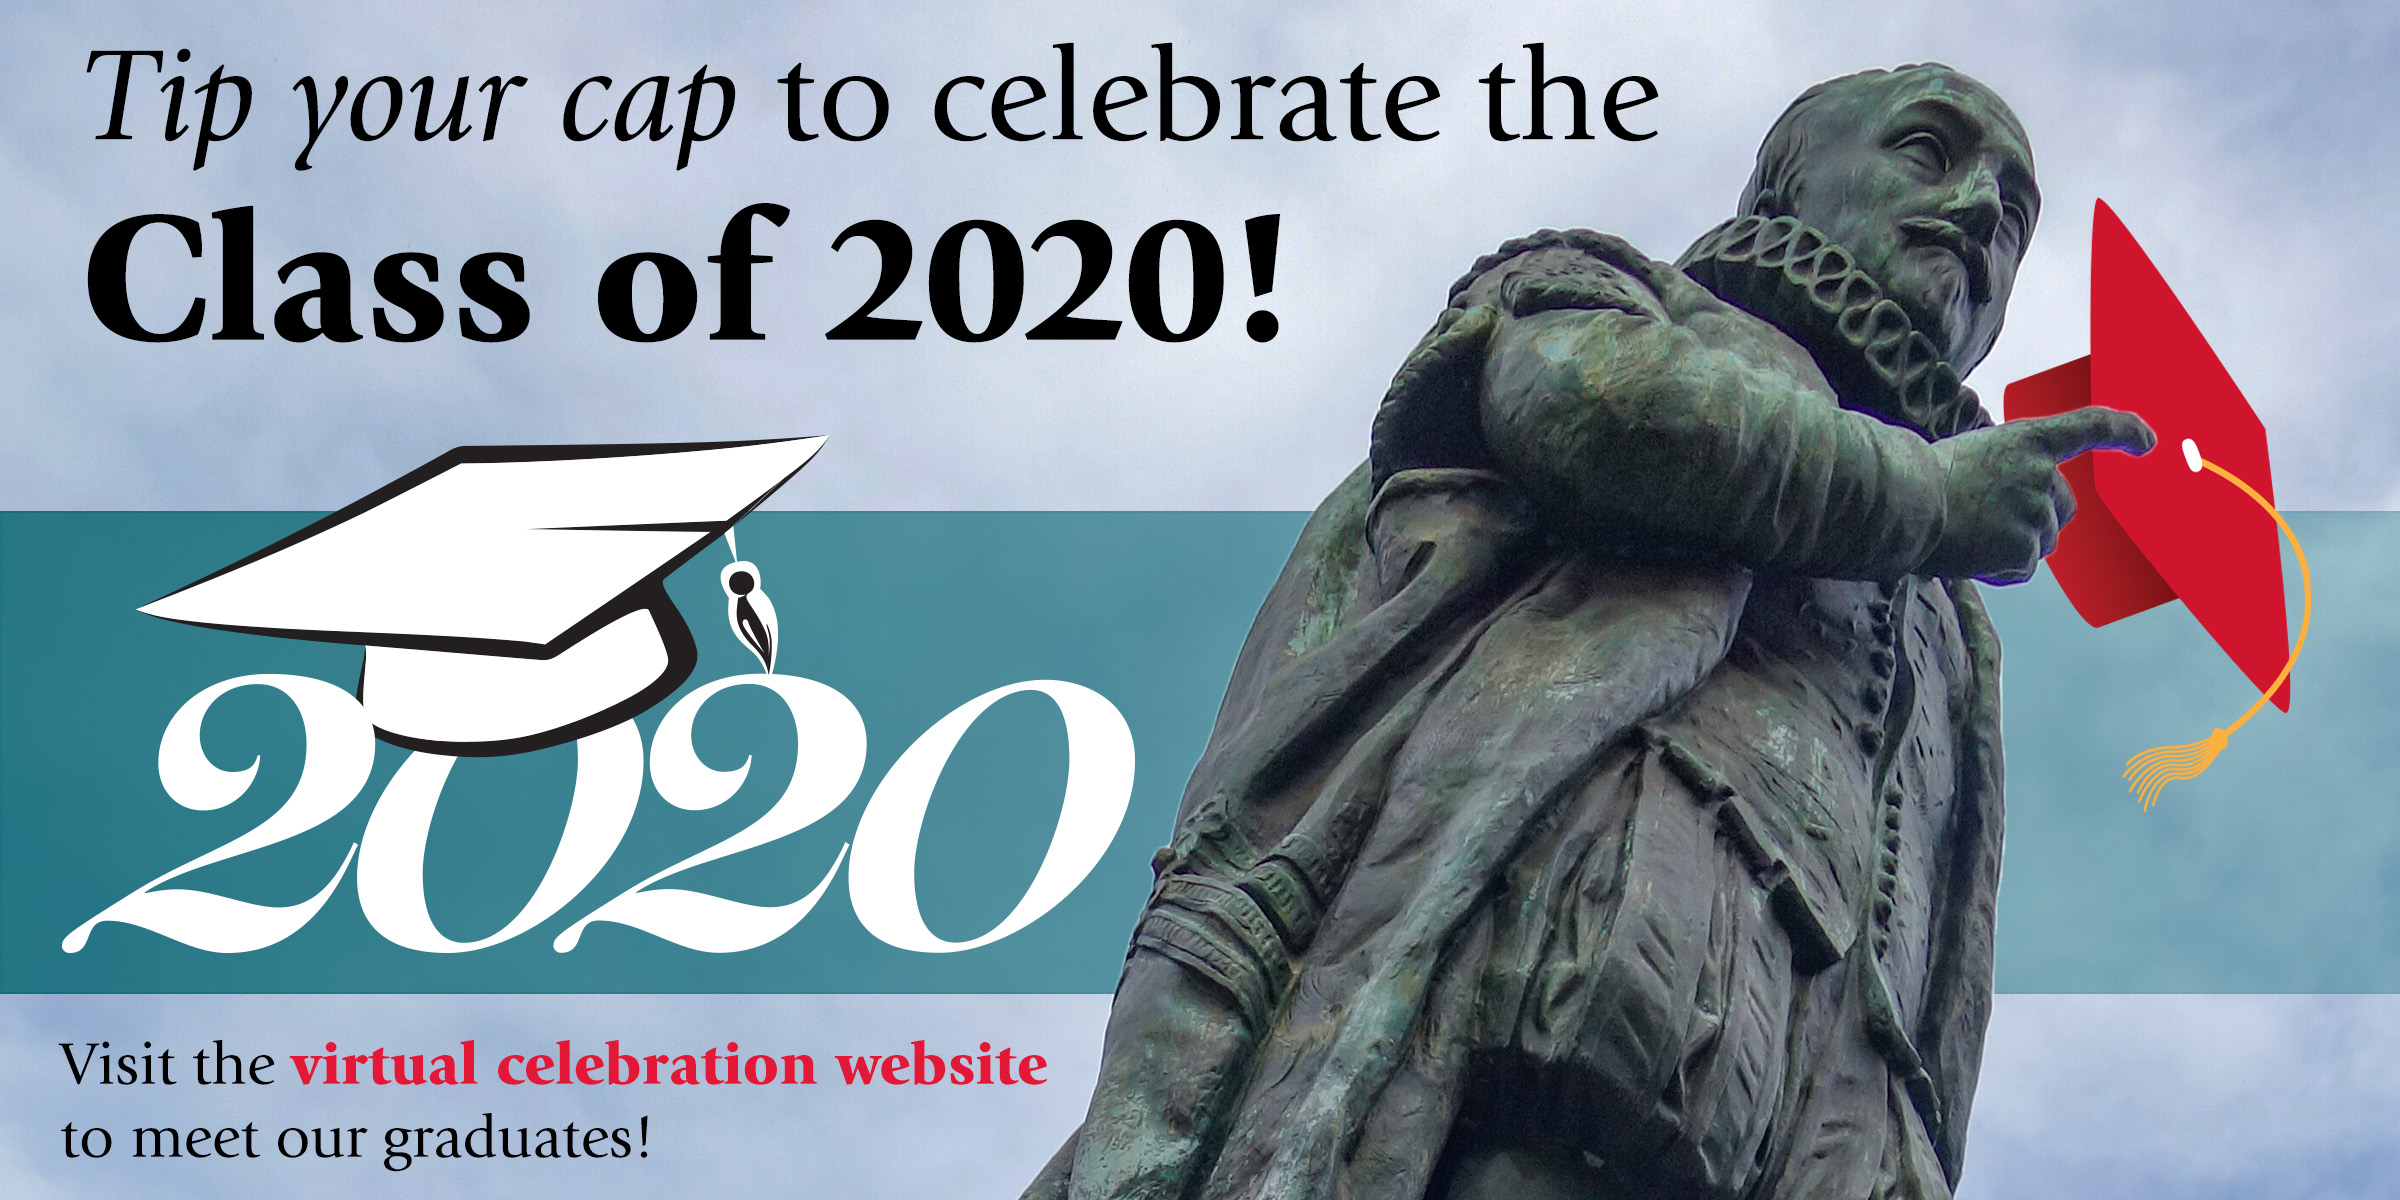 SAS 2020 Virtual Celebration: Tip your cap to celebrate the Class of 2020!